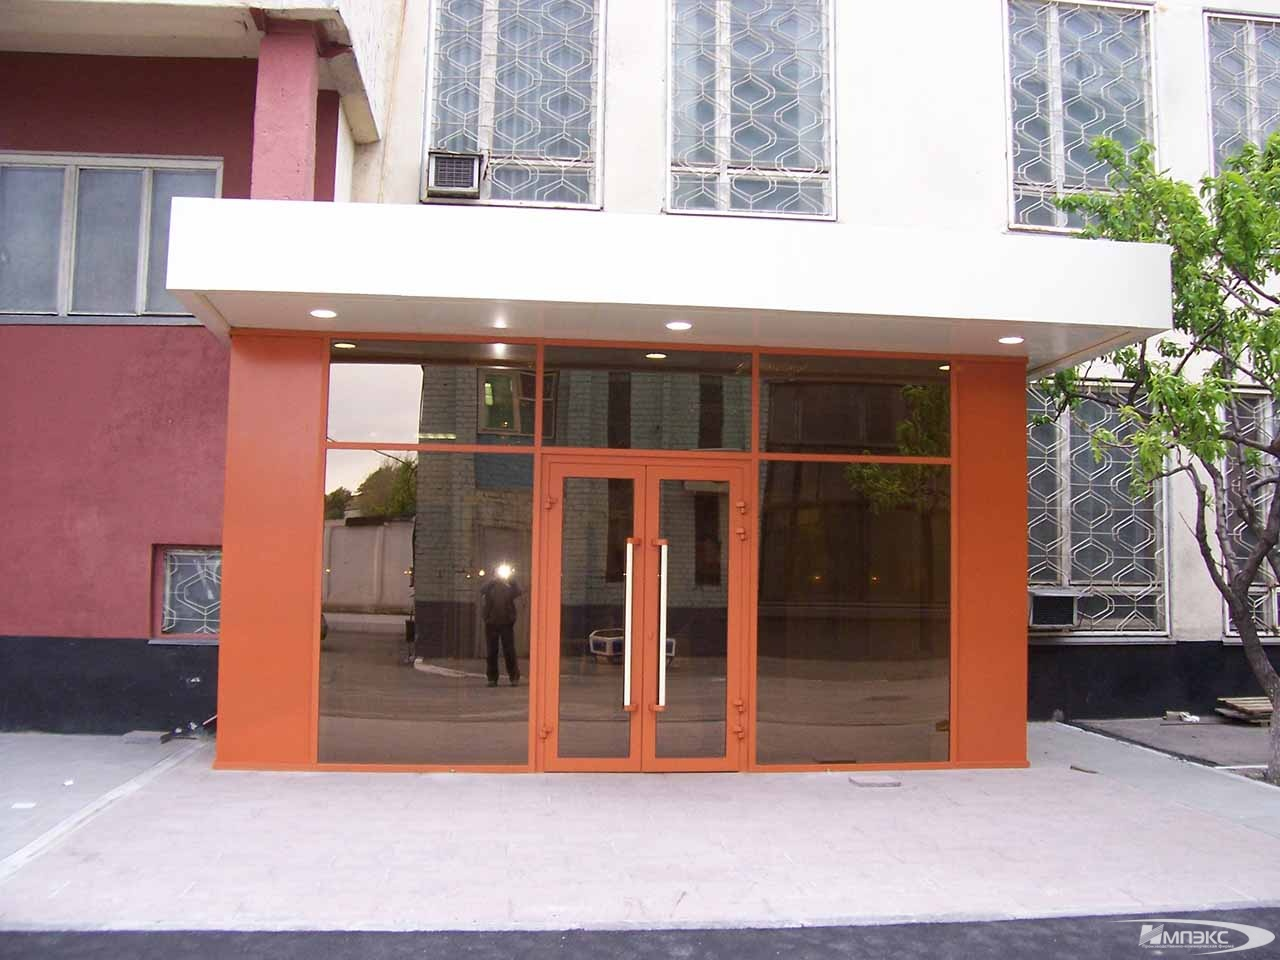 Entrance unit to the hostel